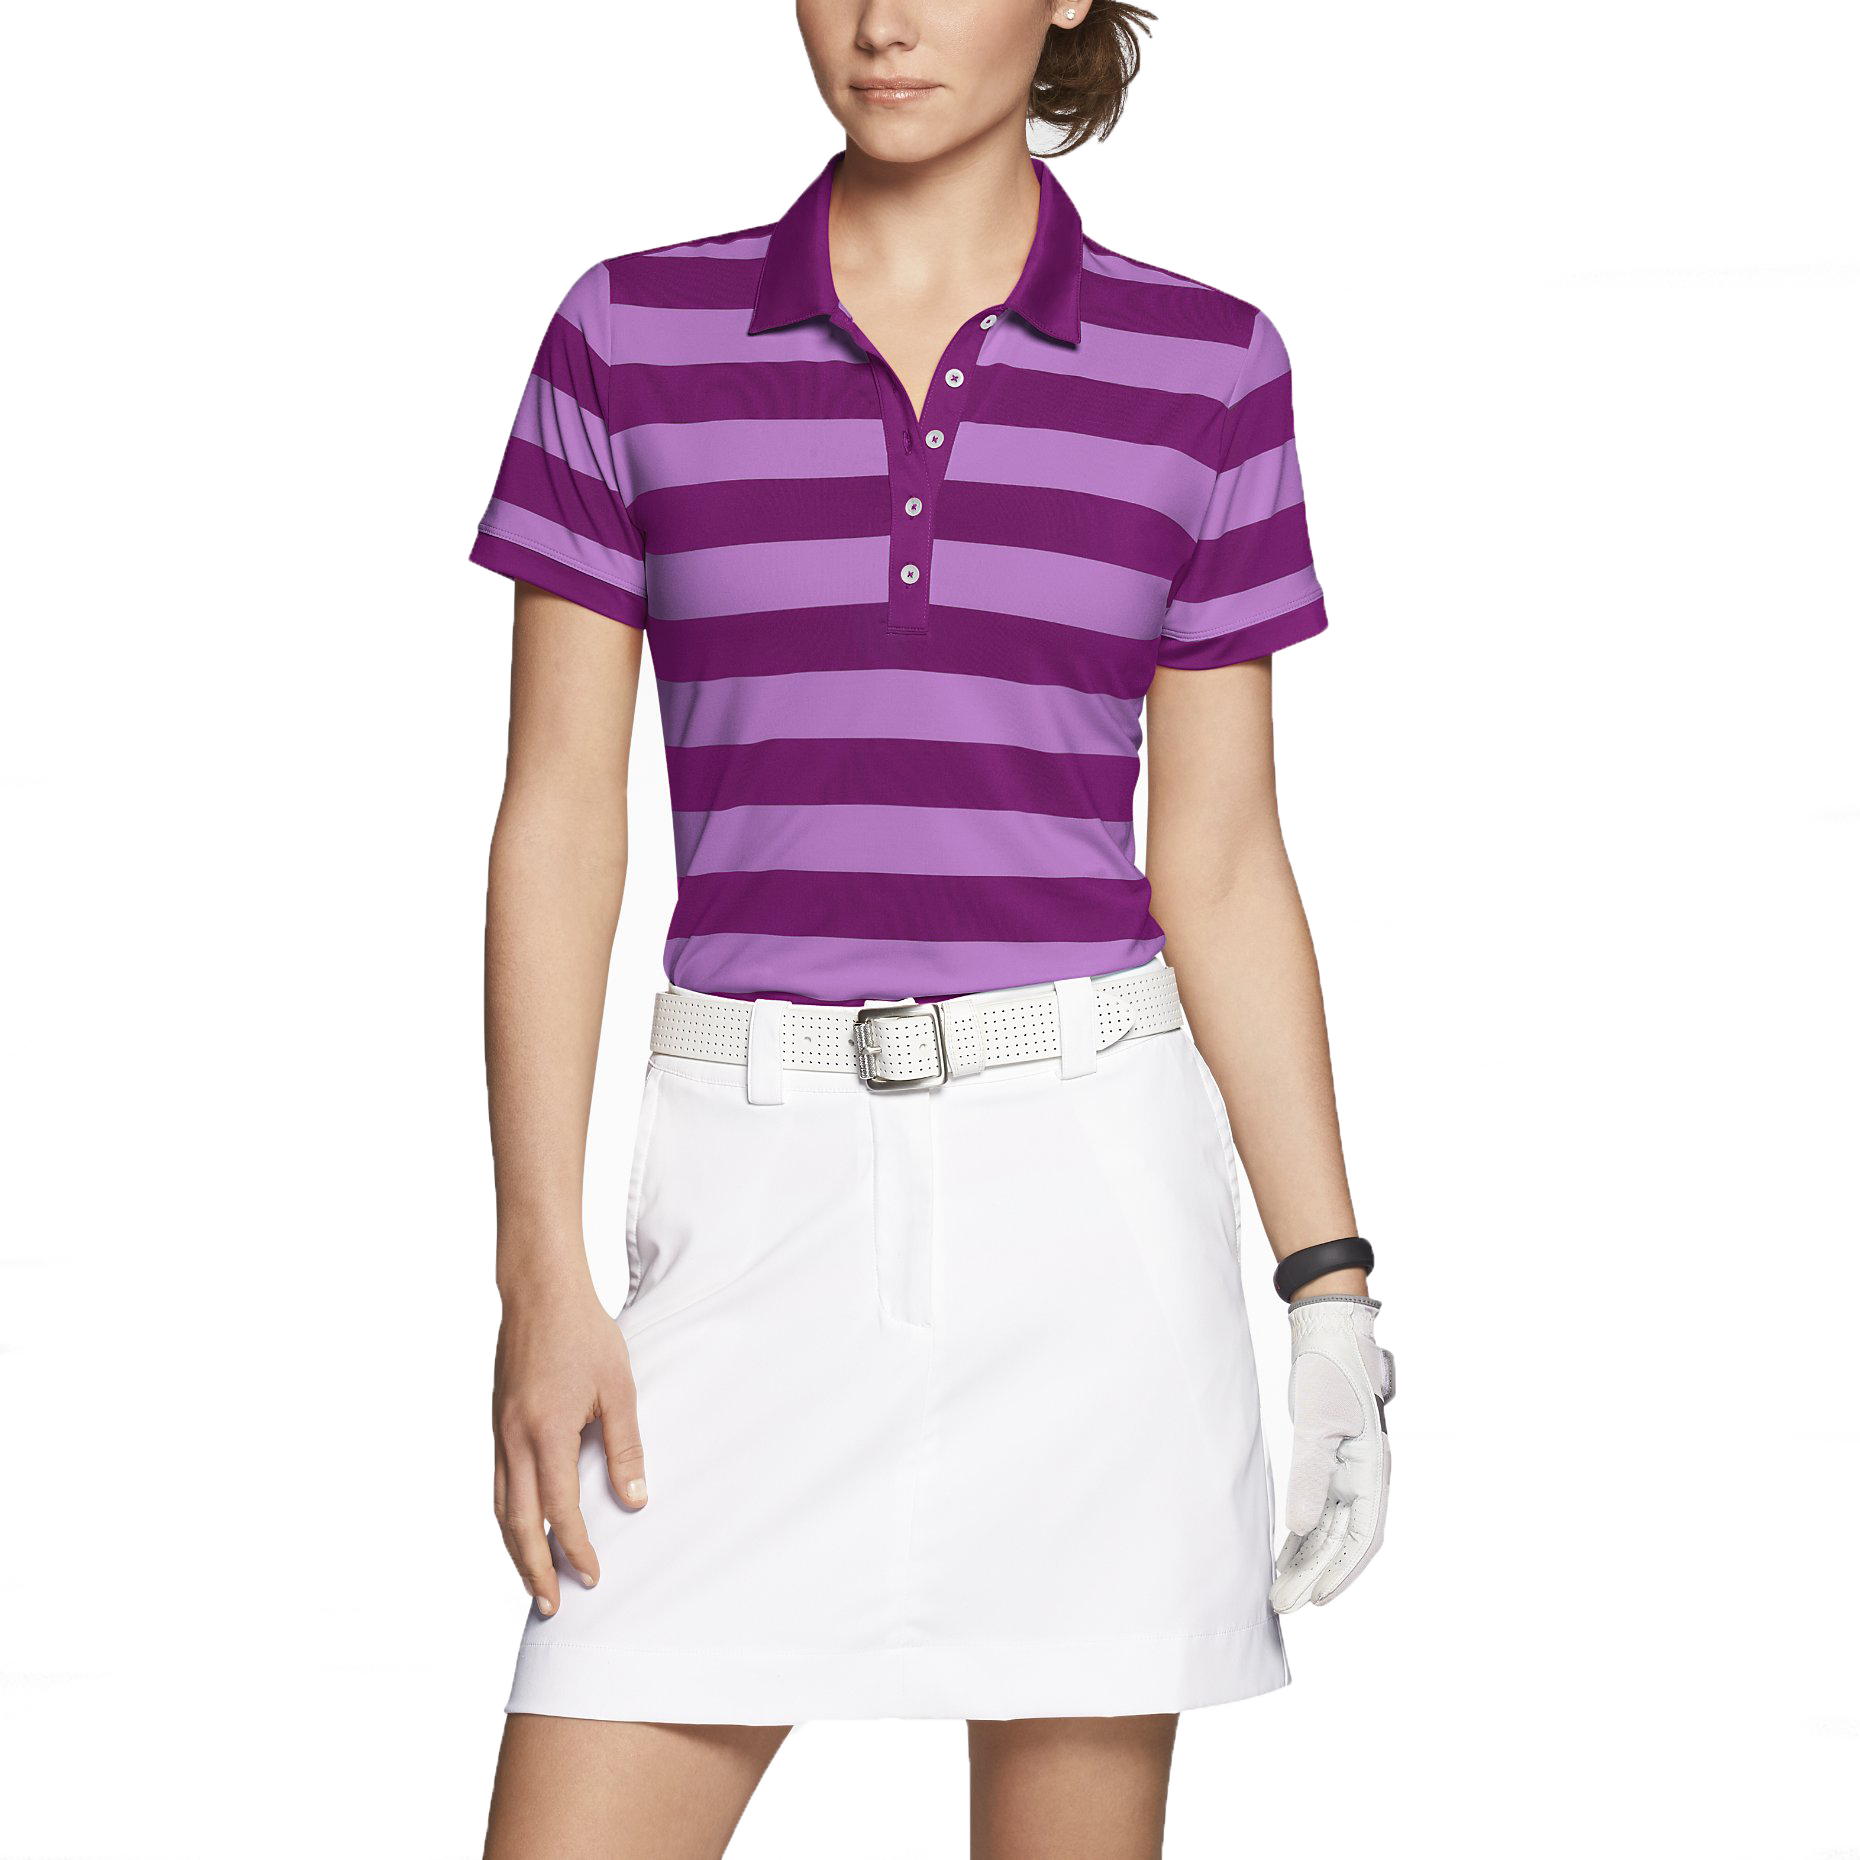 Nike Women's Dri-Fit Bold Stripe Golf Polo Shirt | eBay